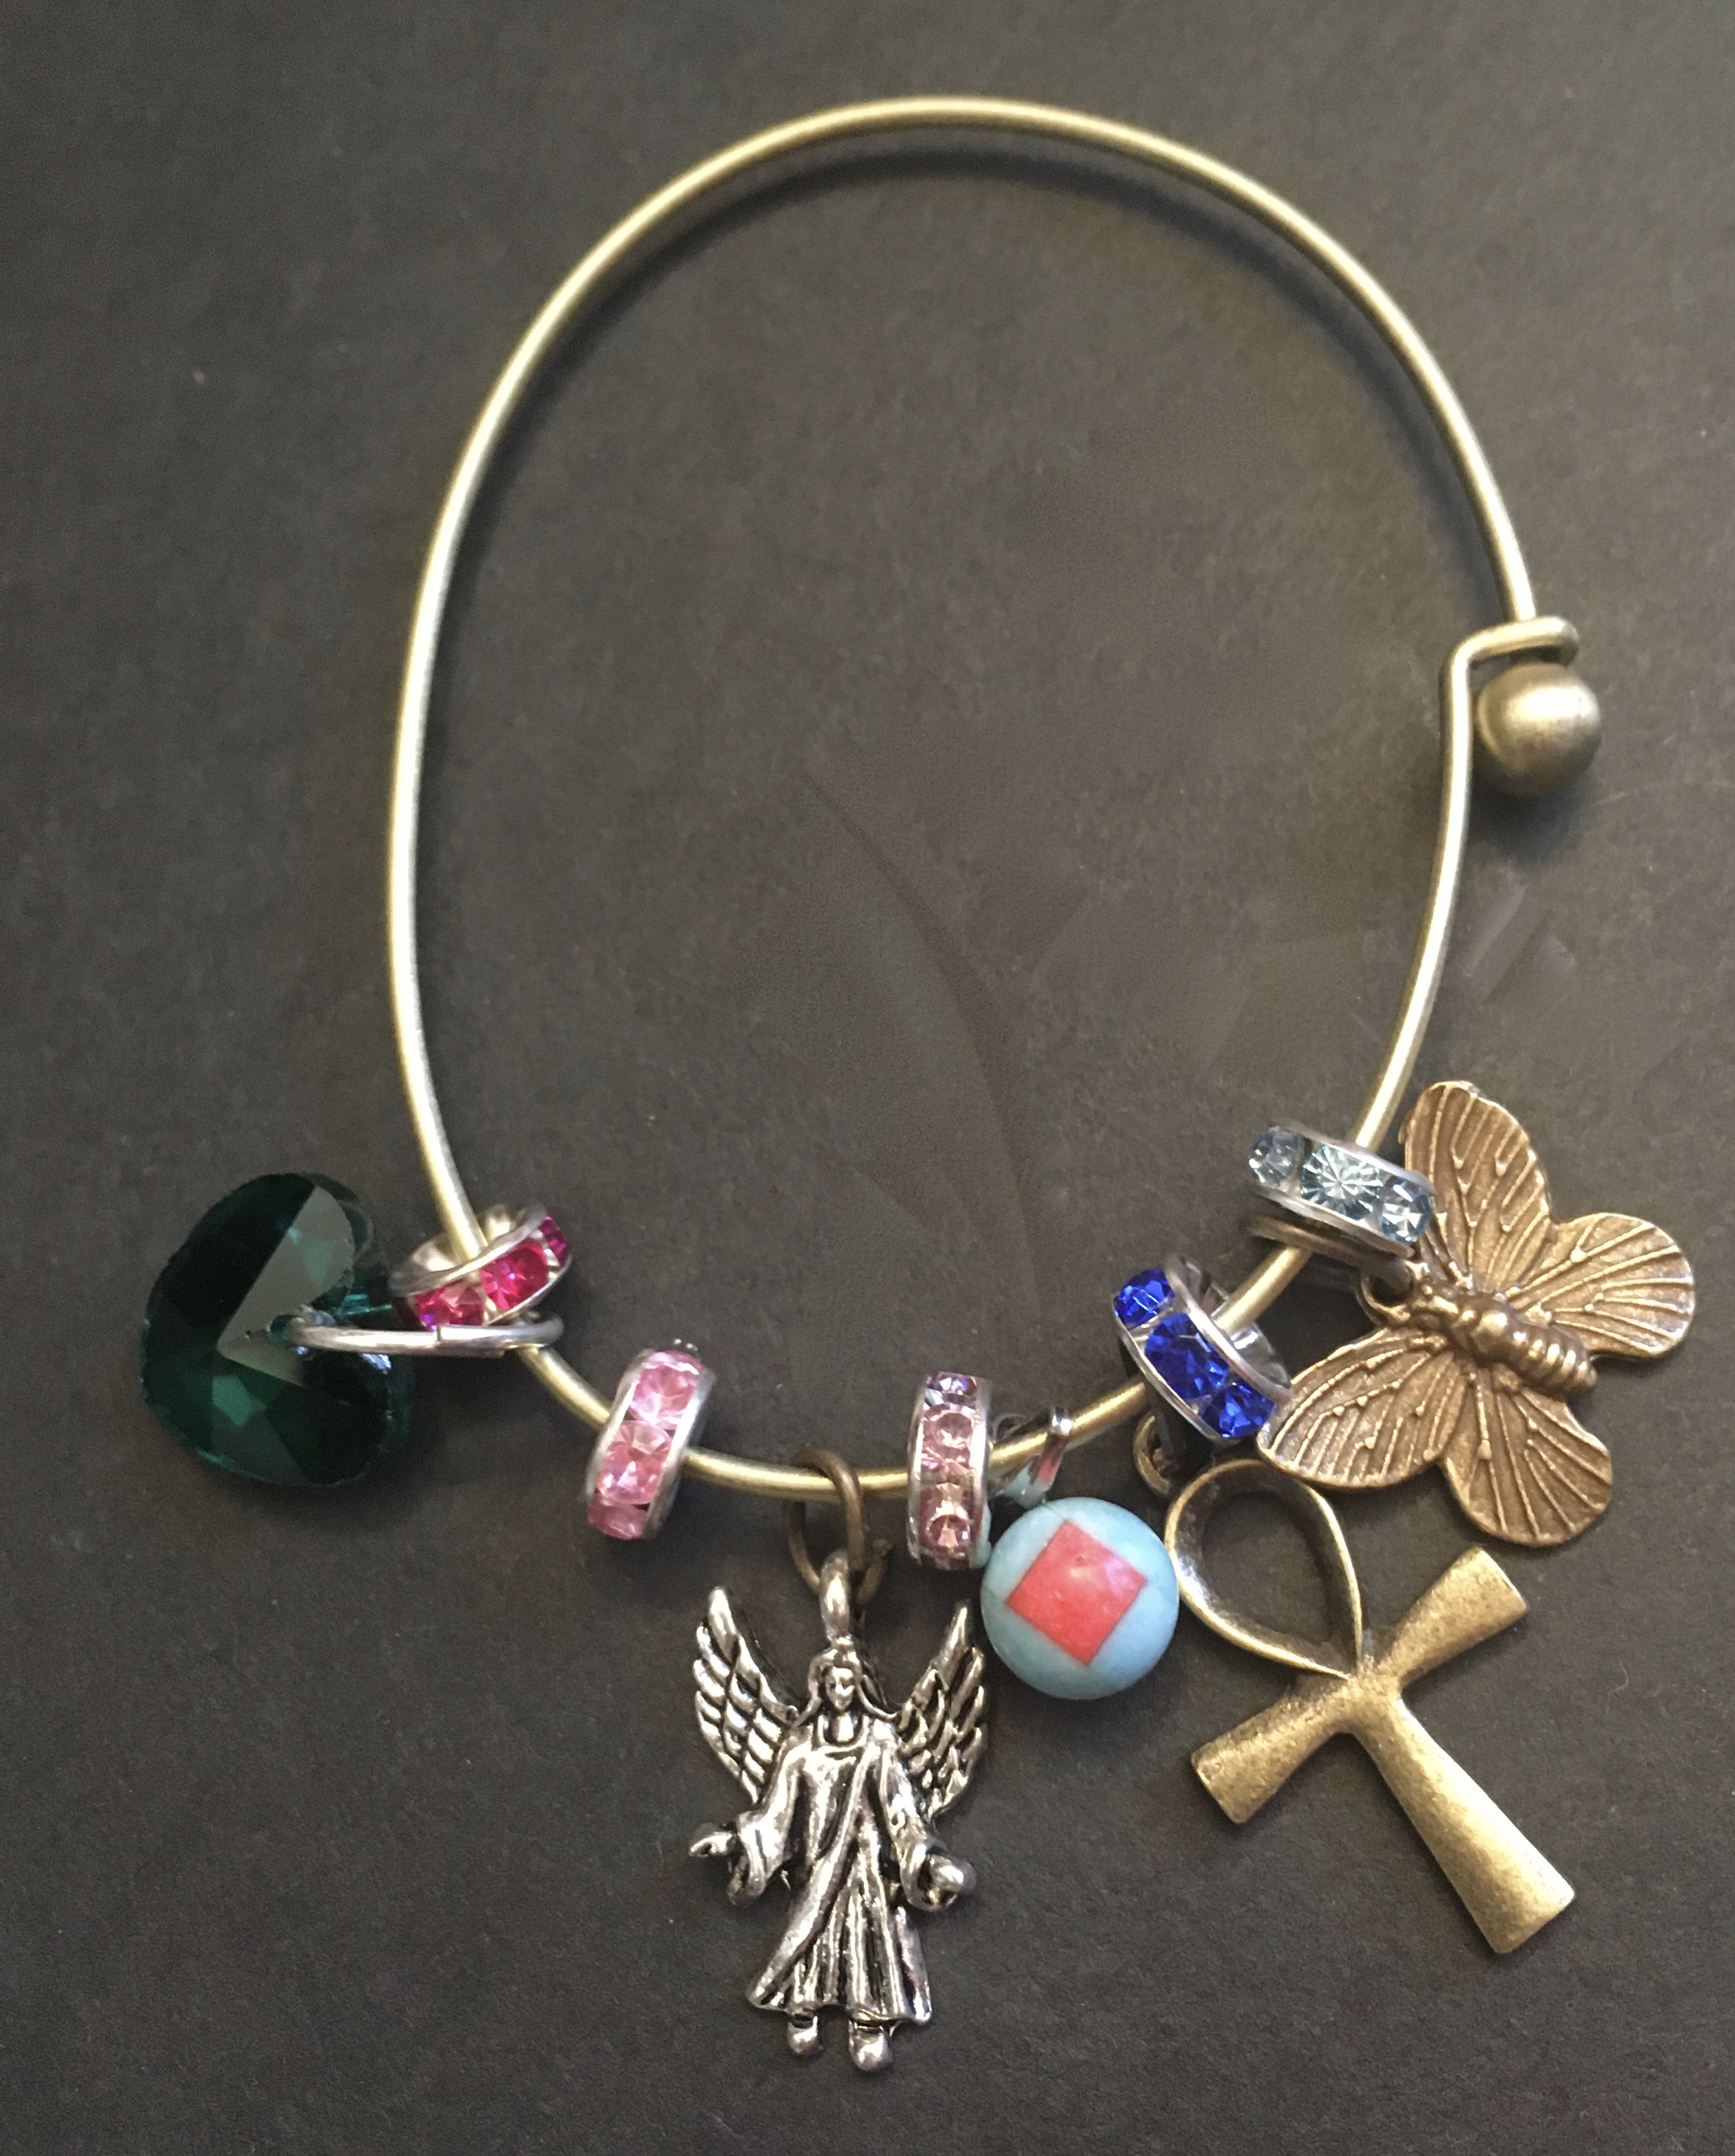 Blessings, Ankh, and butterfly bangle